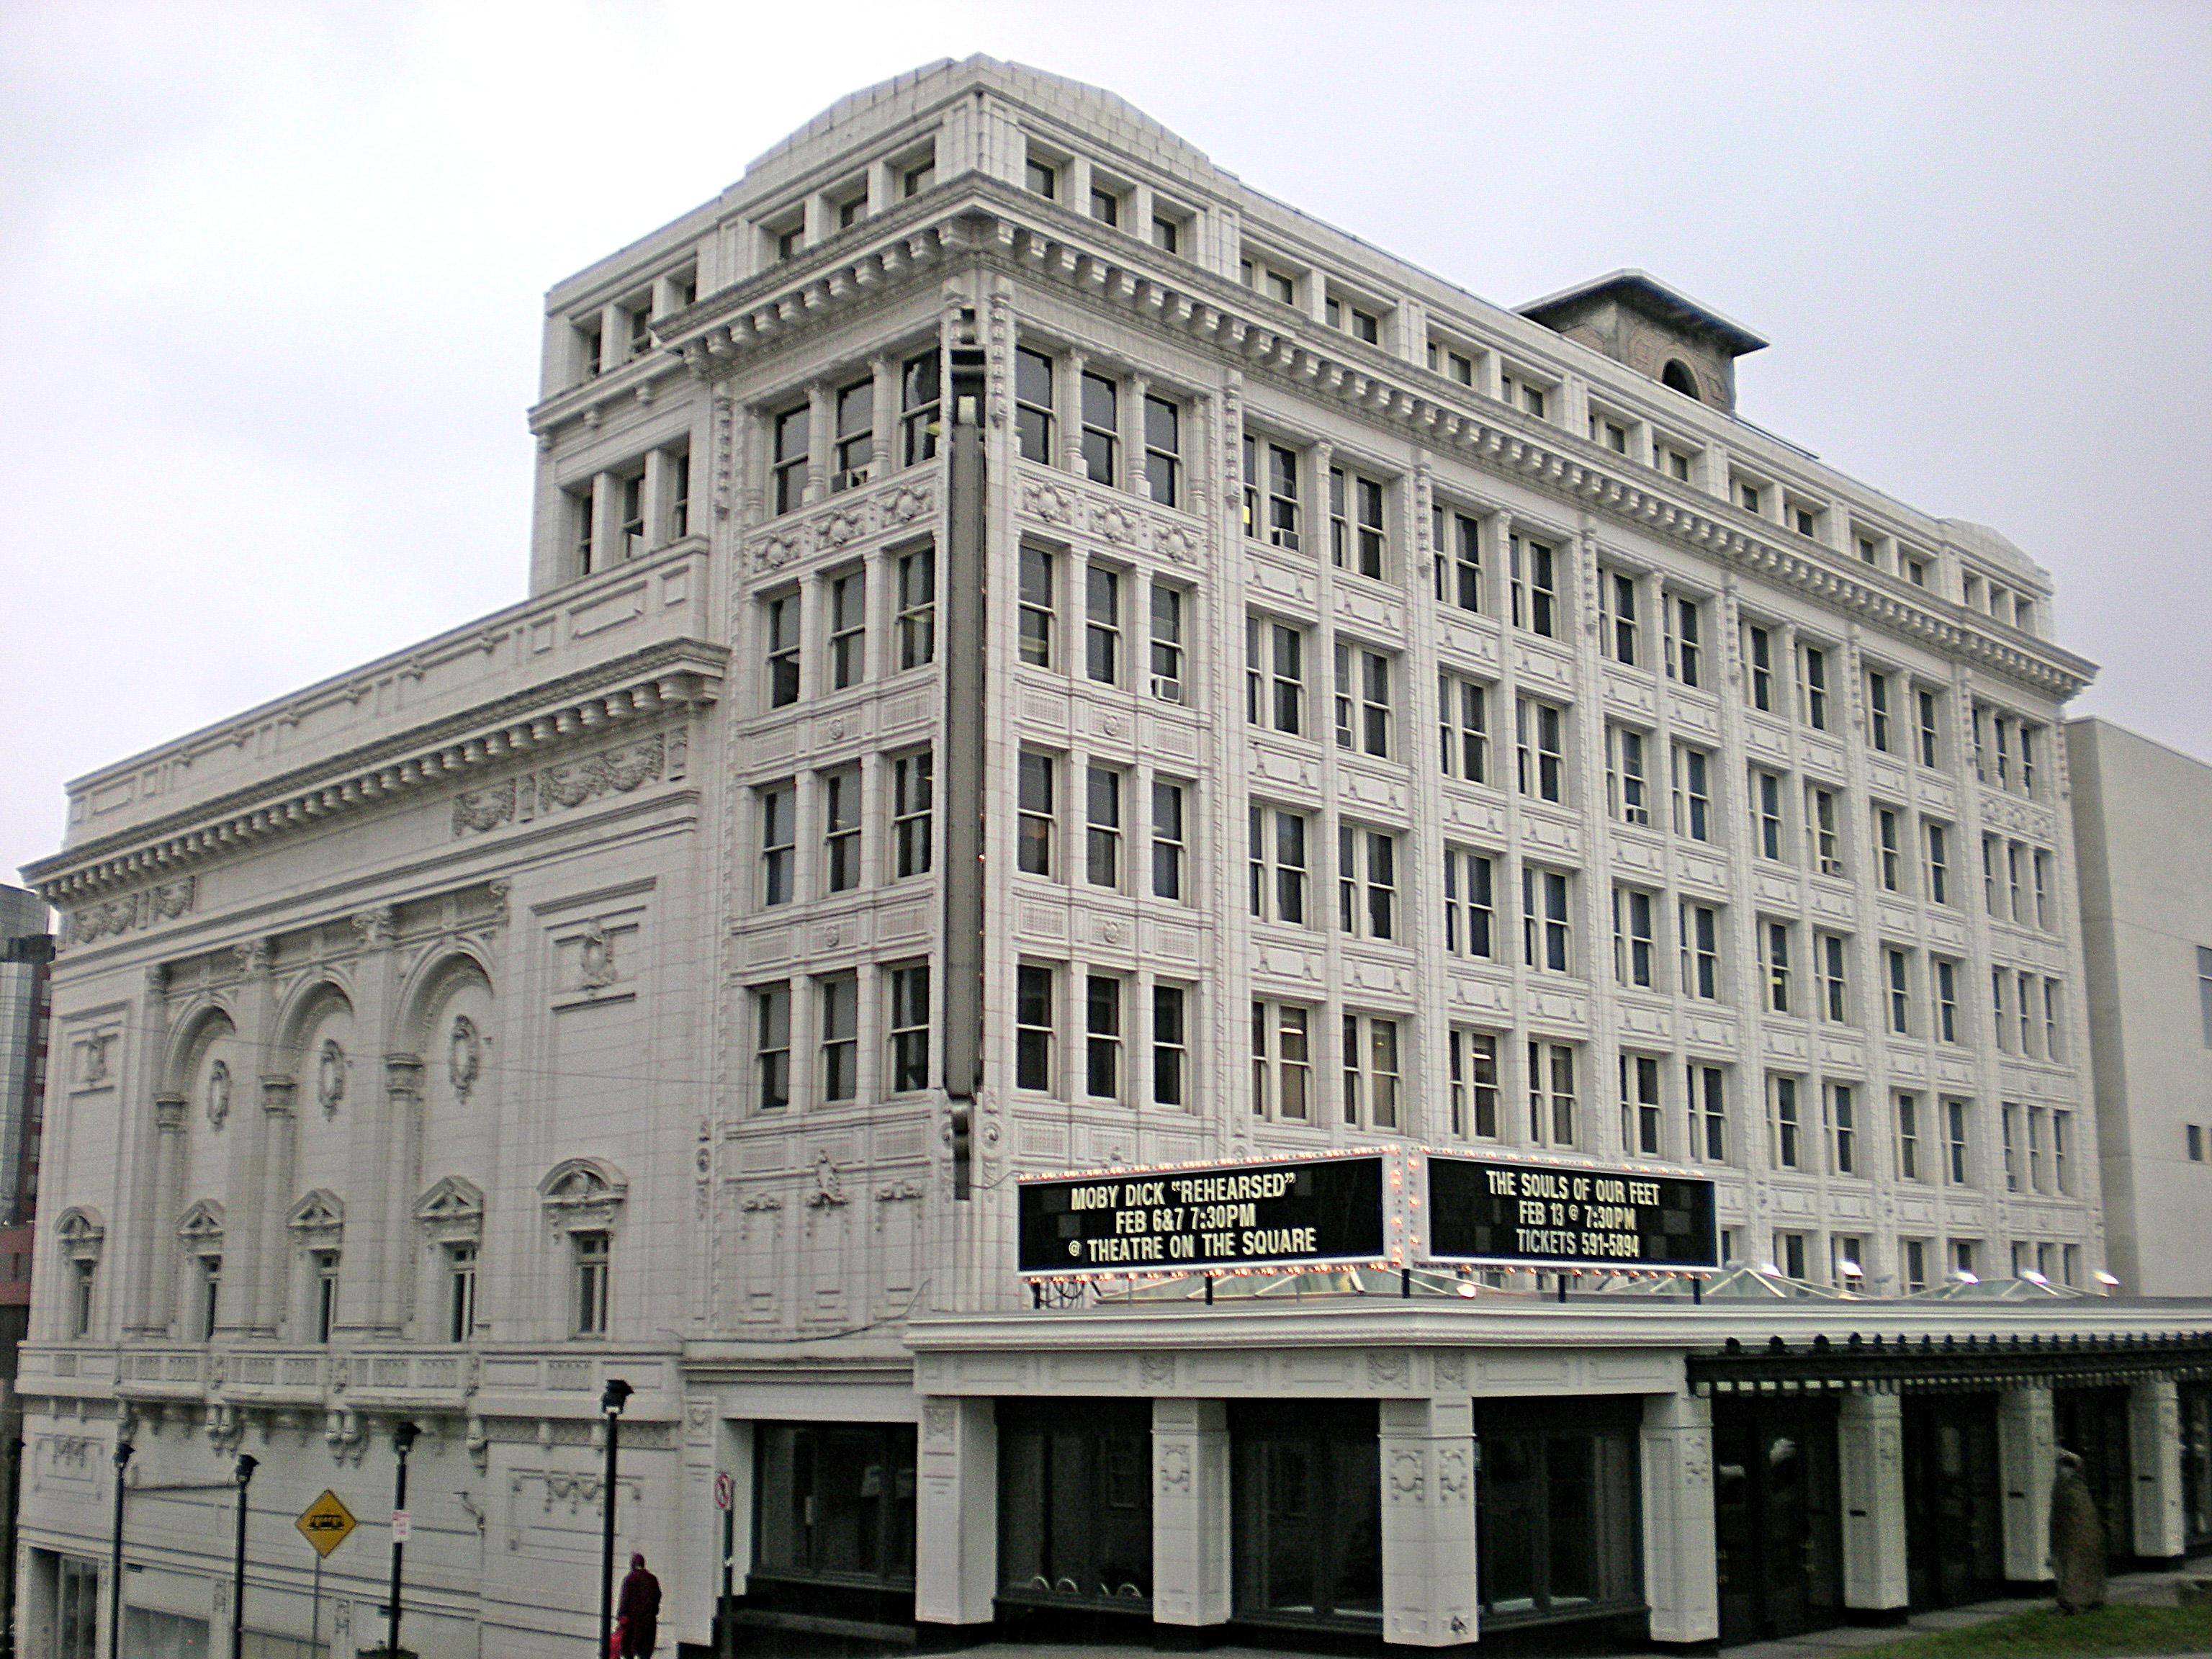 White terra cotta facade of the Pantages Theatre